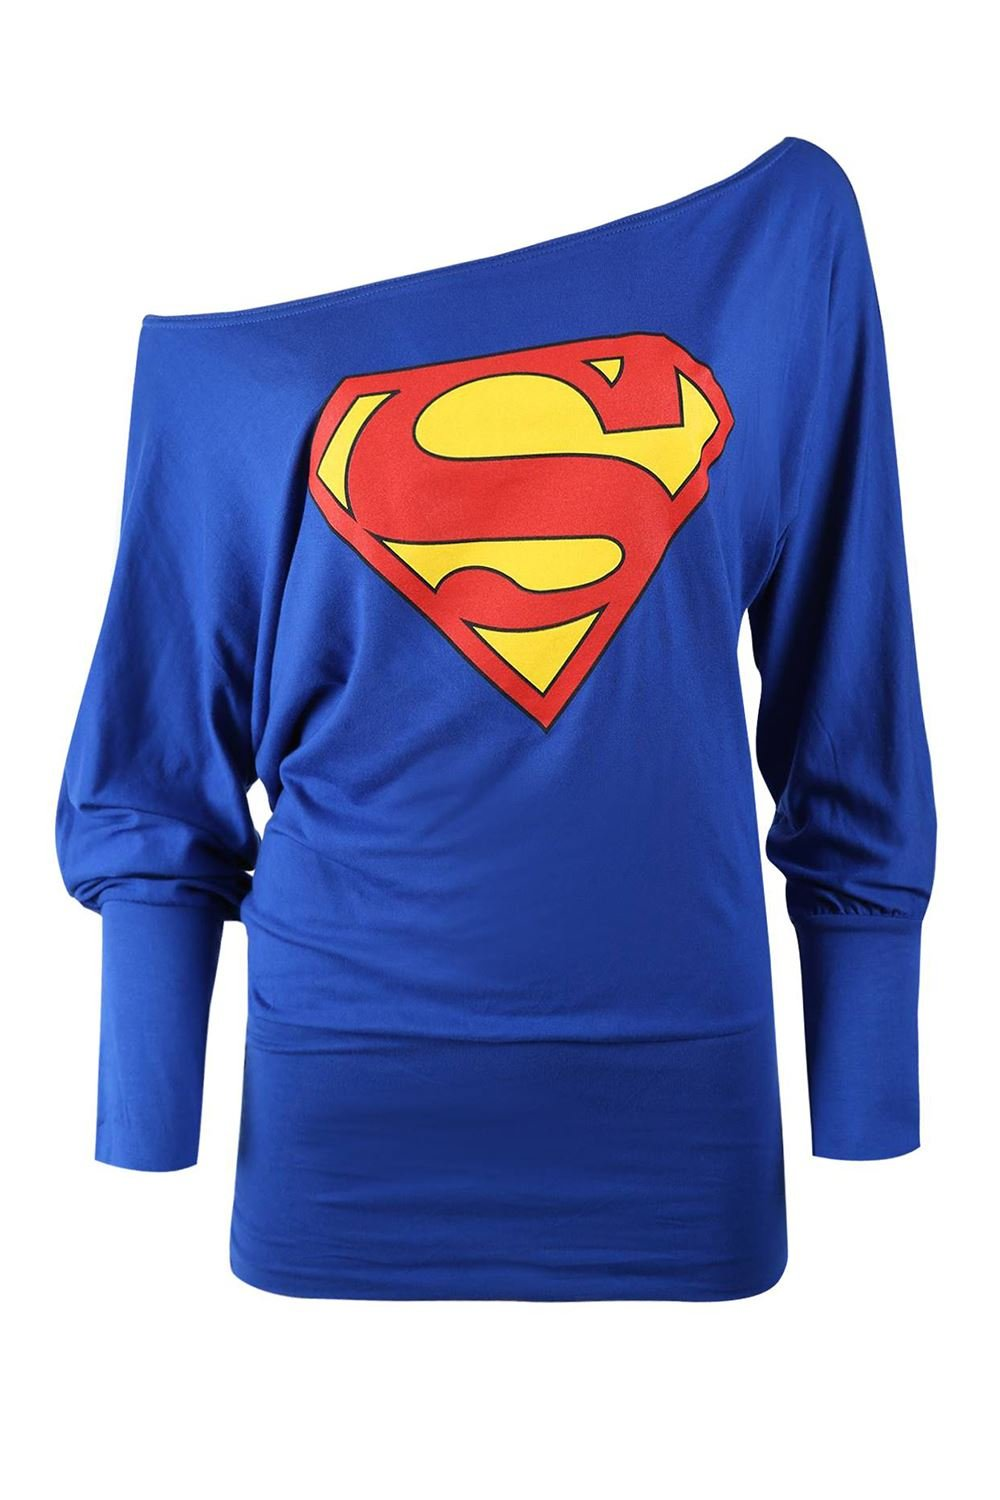 feaeb4a67a92d Plus Size Womens Superhero T Shirts - BCD Tofu House